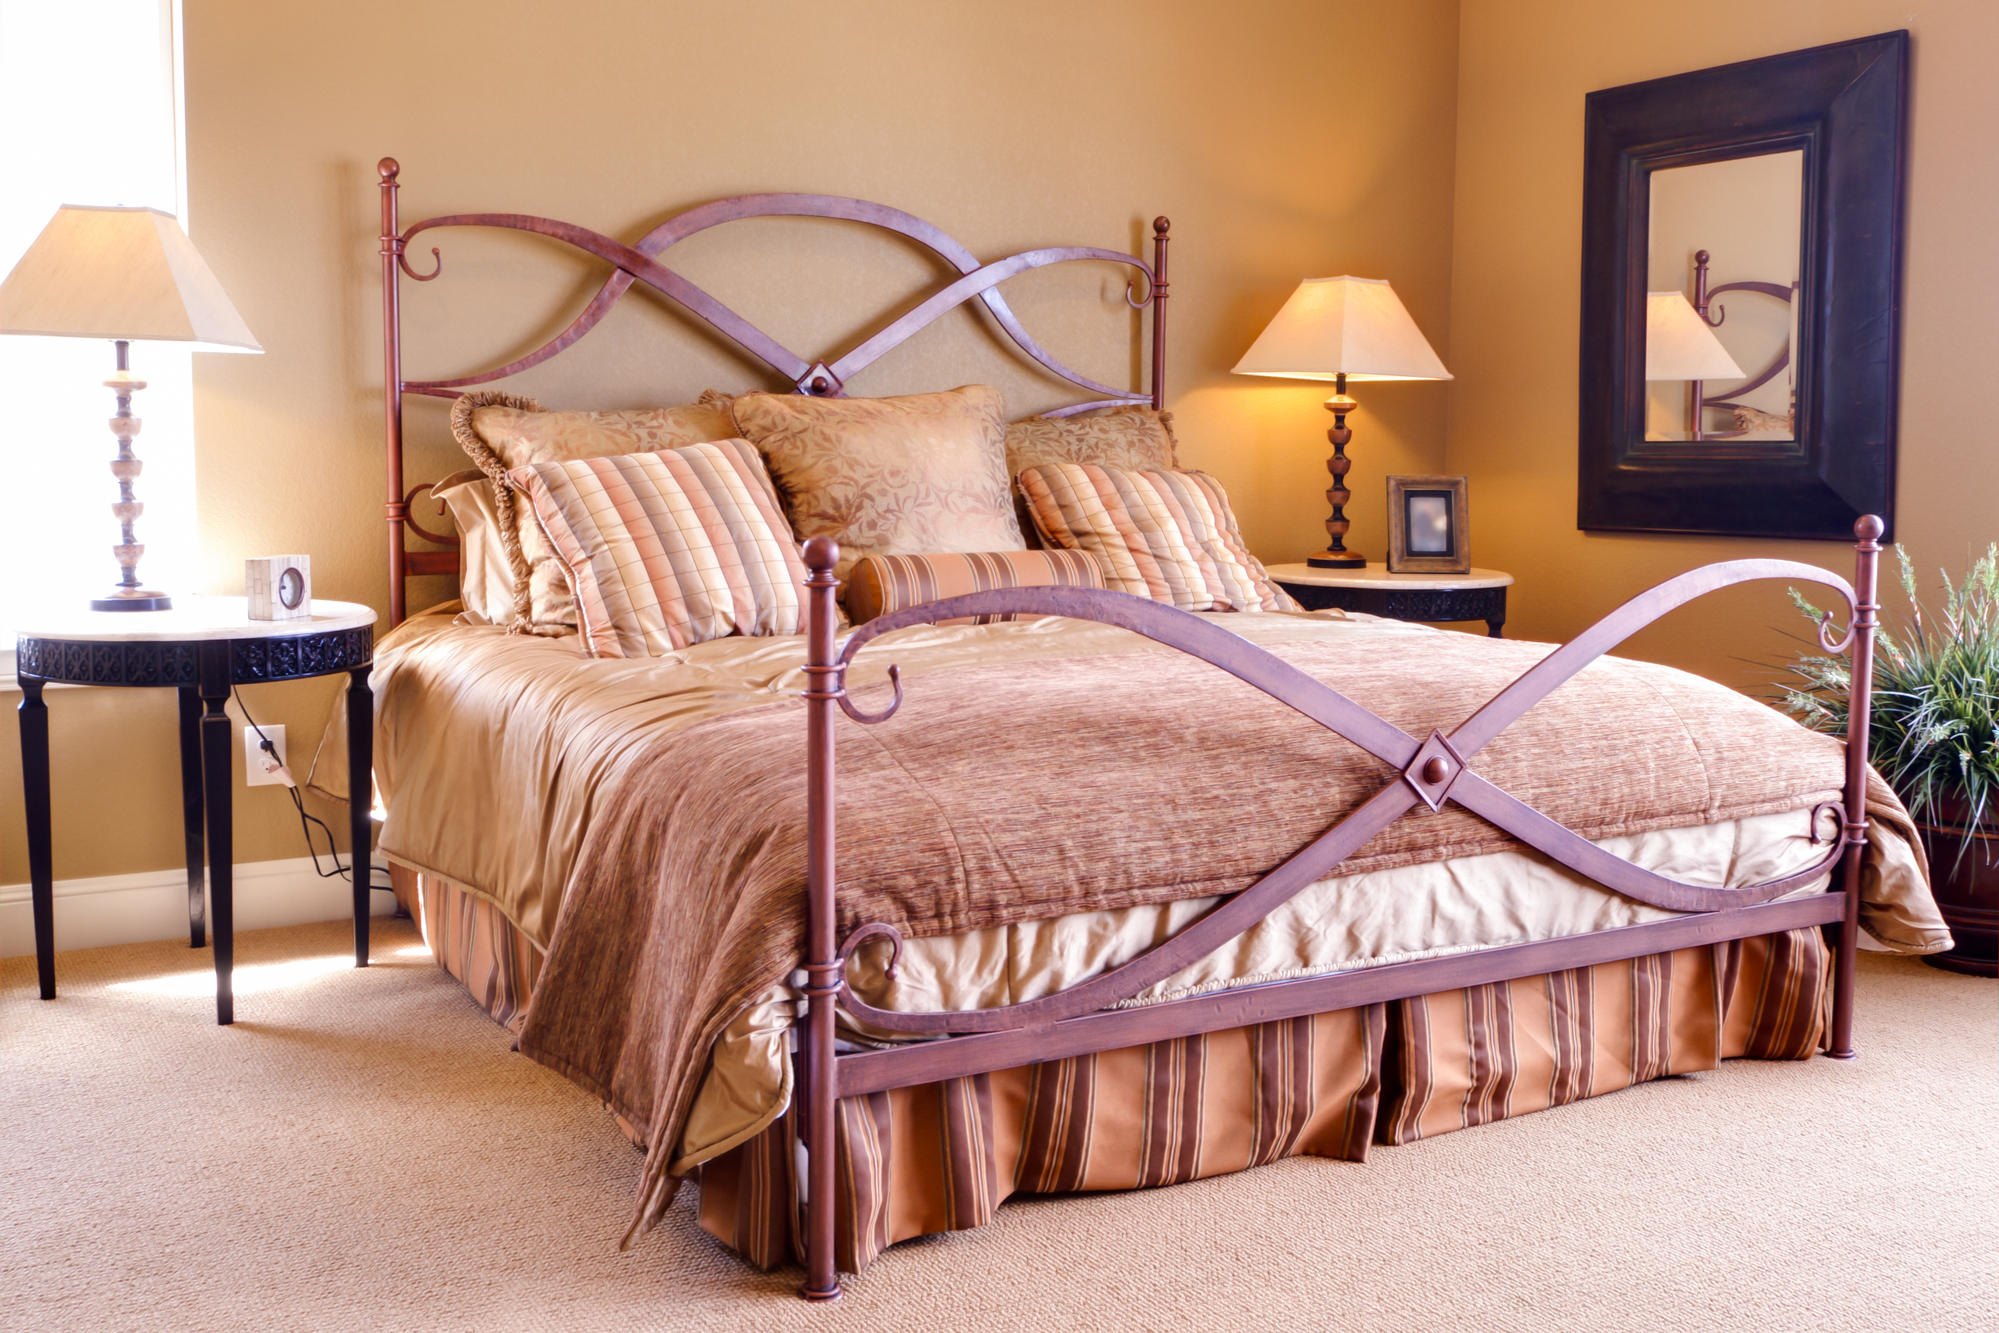 How to Make a Copper Bed Frame